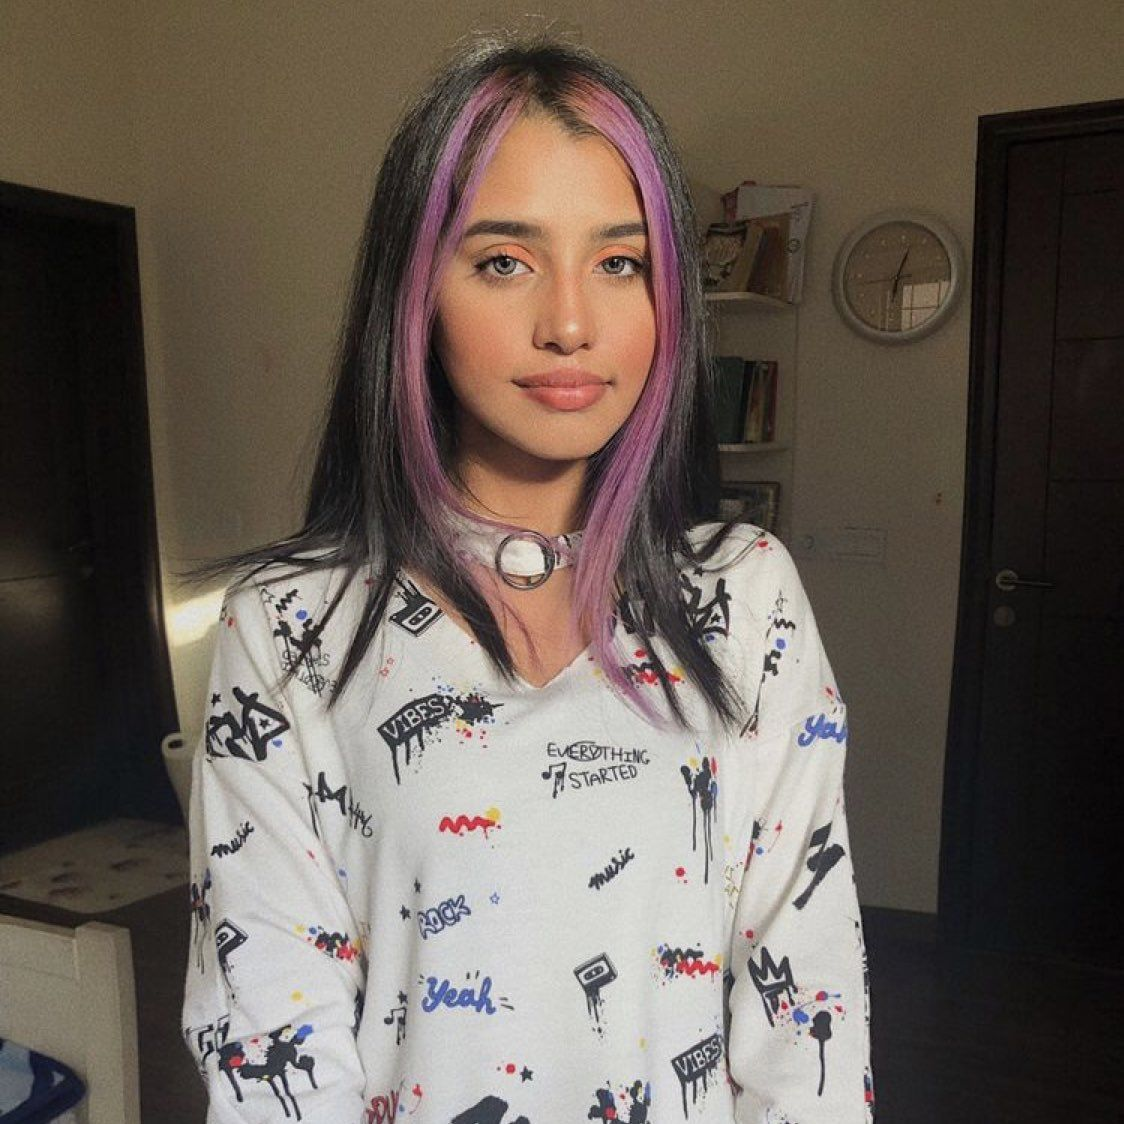 Lace Front Wigs On Instagram Lavender Eggplant Purple Follow Wigology101 For More Pics Like Comment Hair Styles Wig Hairstyles Weave Hairstyles